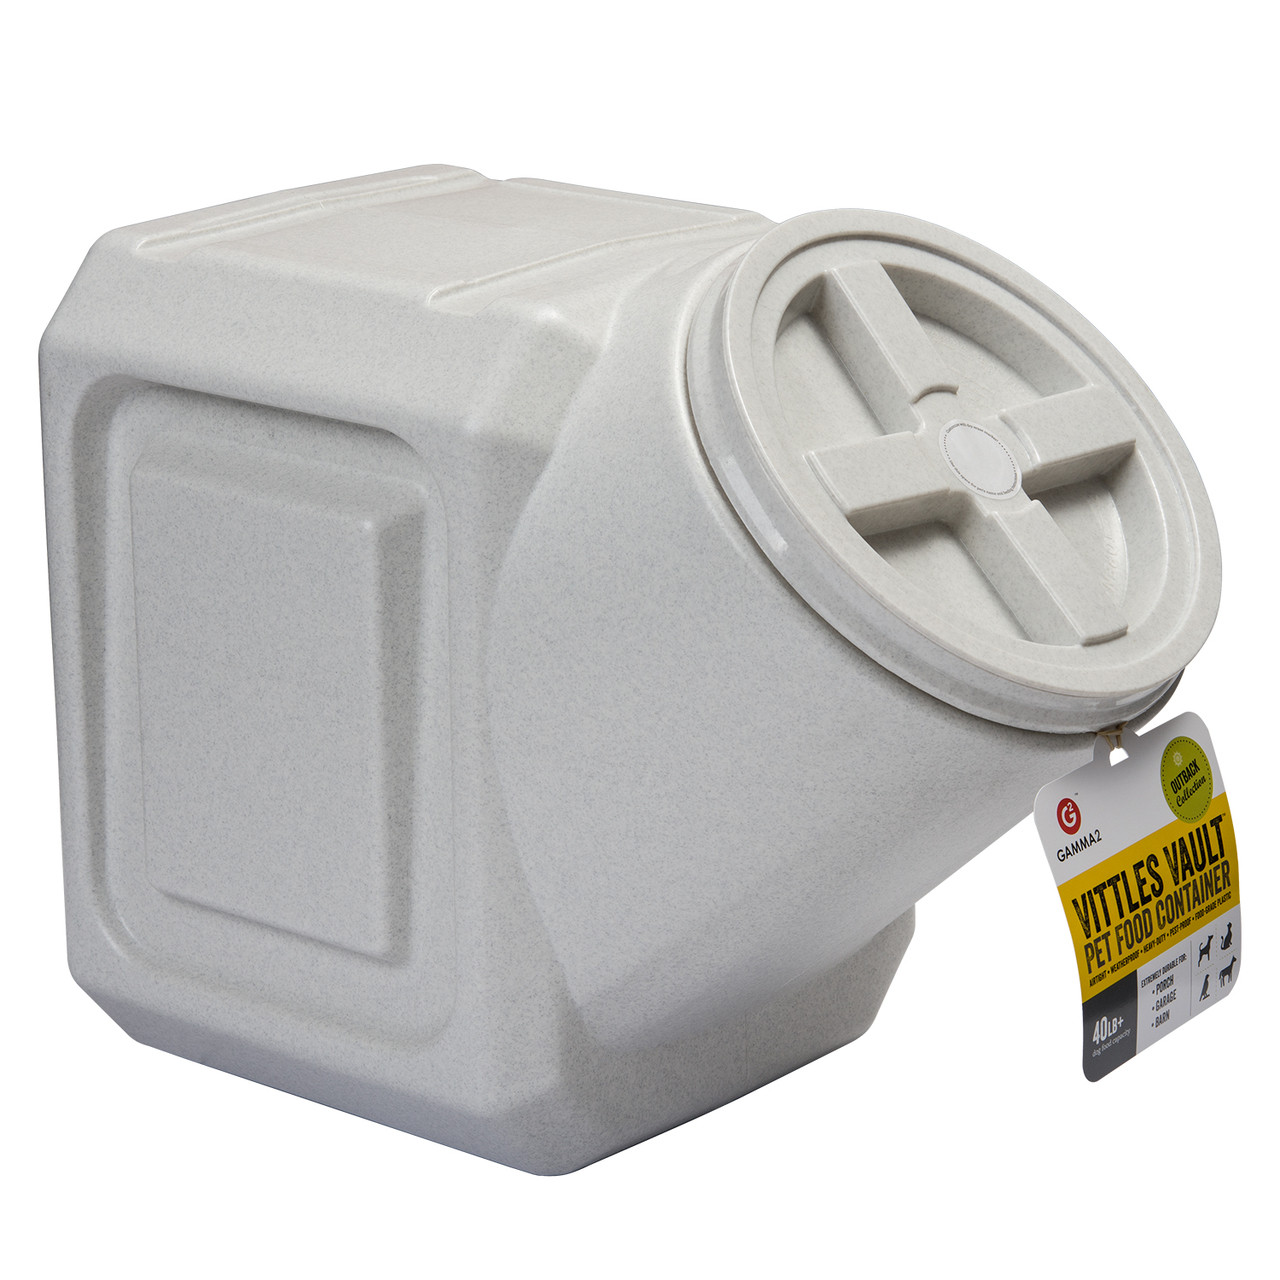 click here to shop Vittles Vault Outback Stackable Pet Food Container